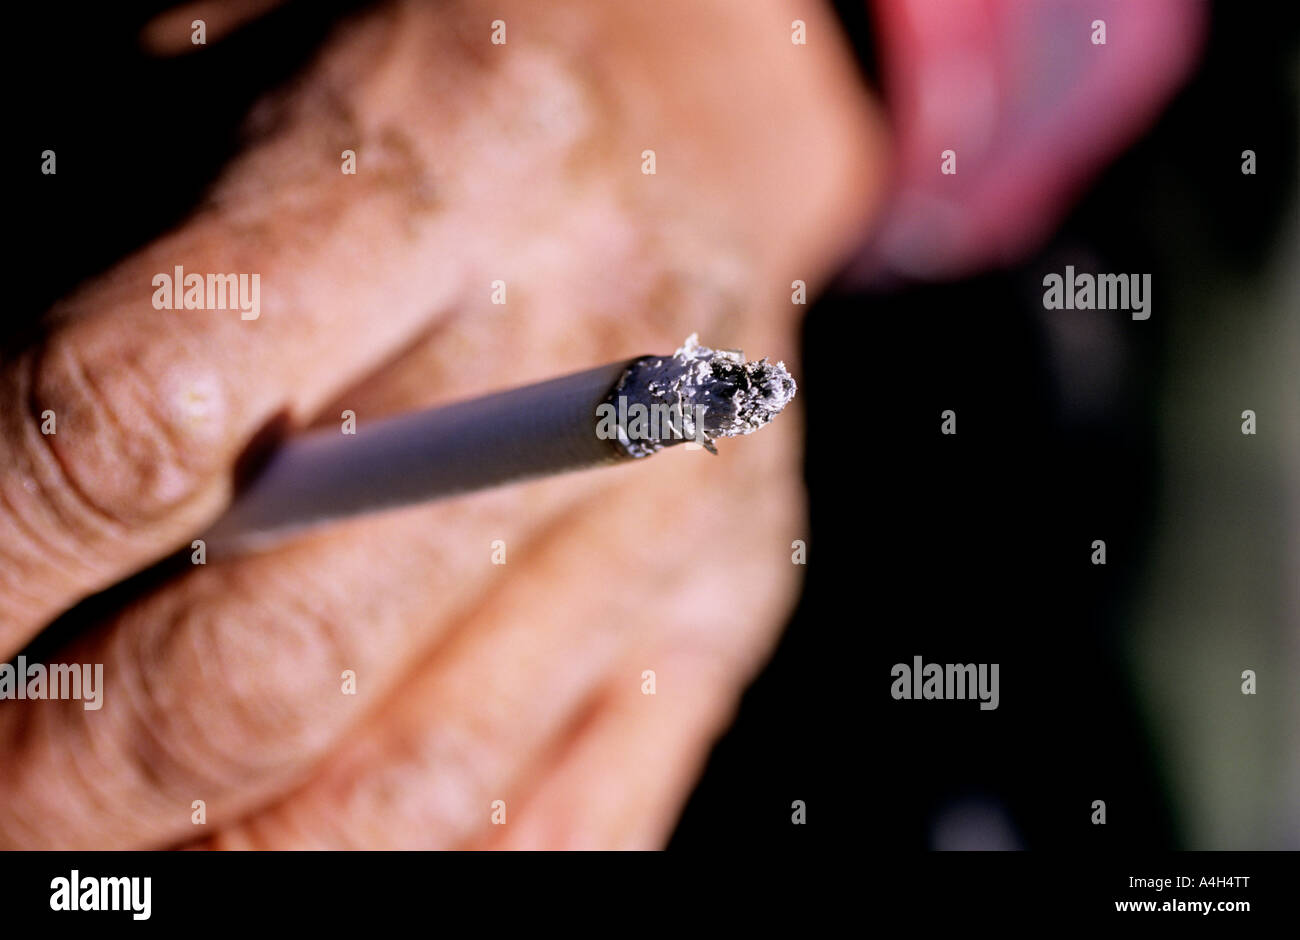 cigarette smoker close up macro wrinkles   50  60 - Stock Image